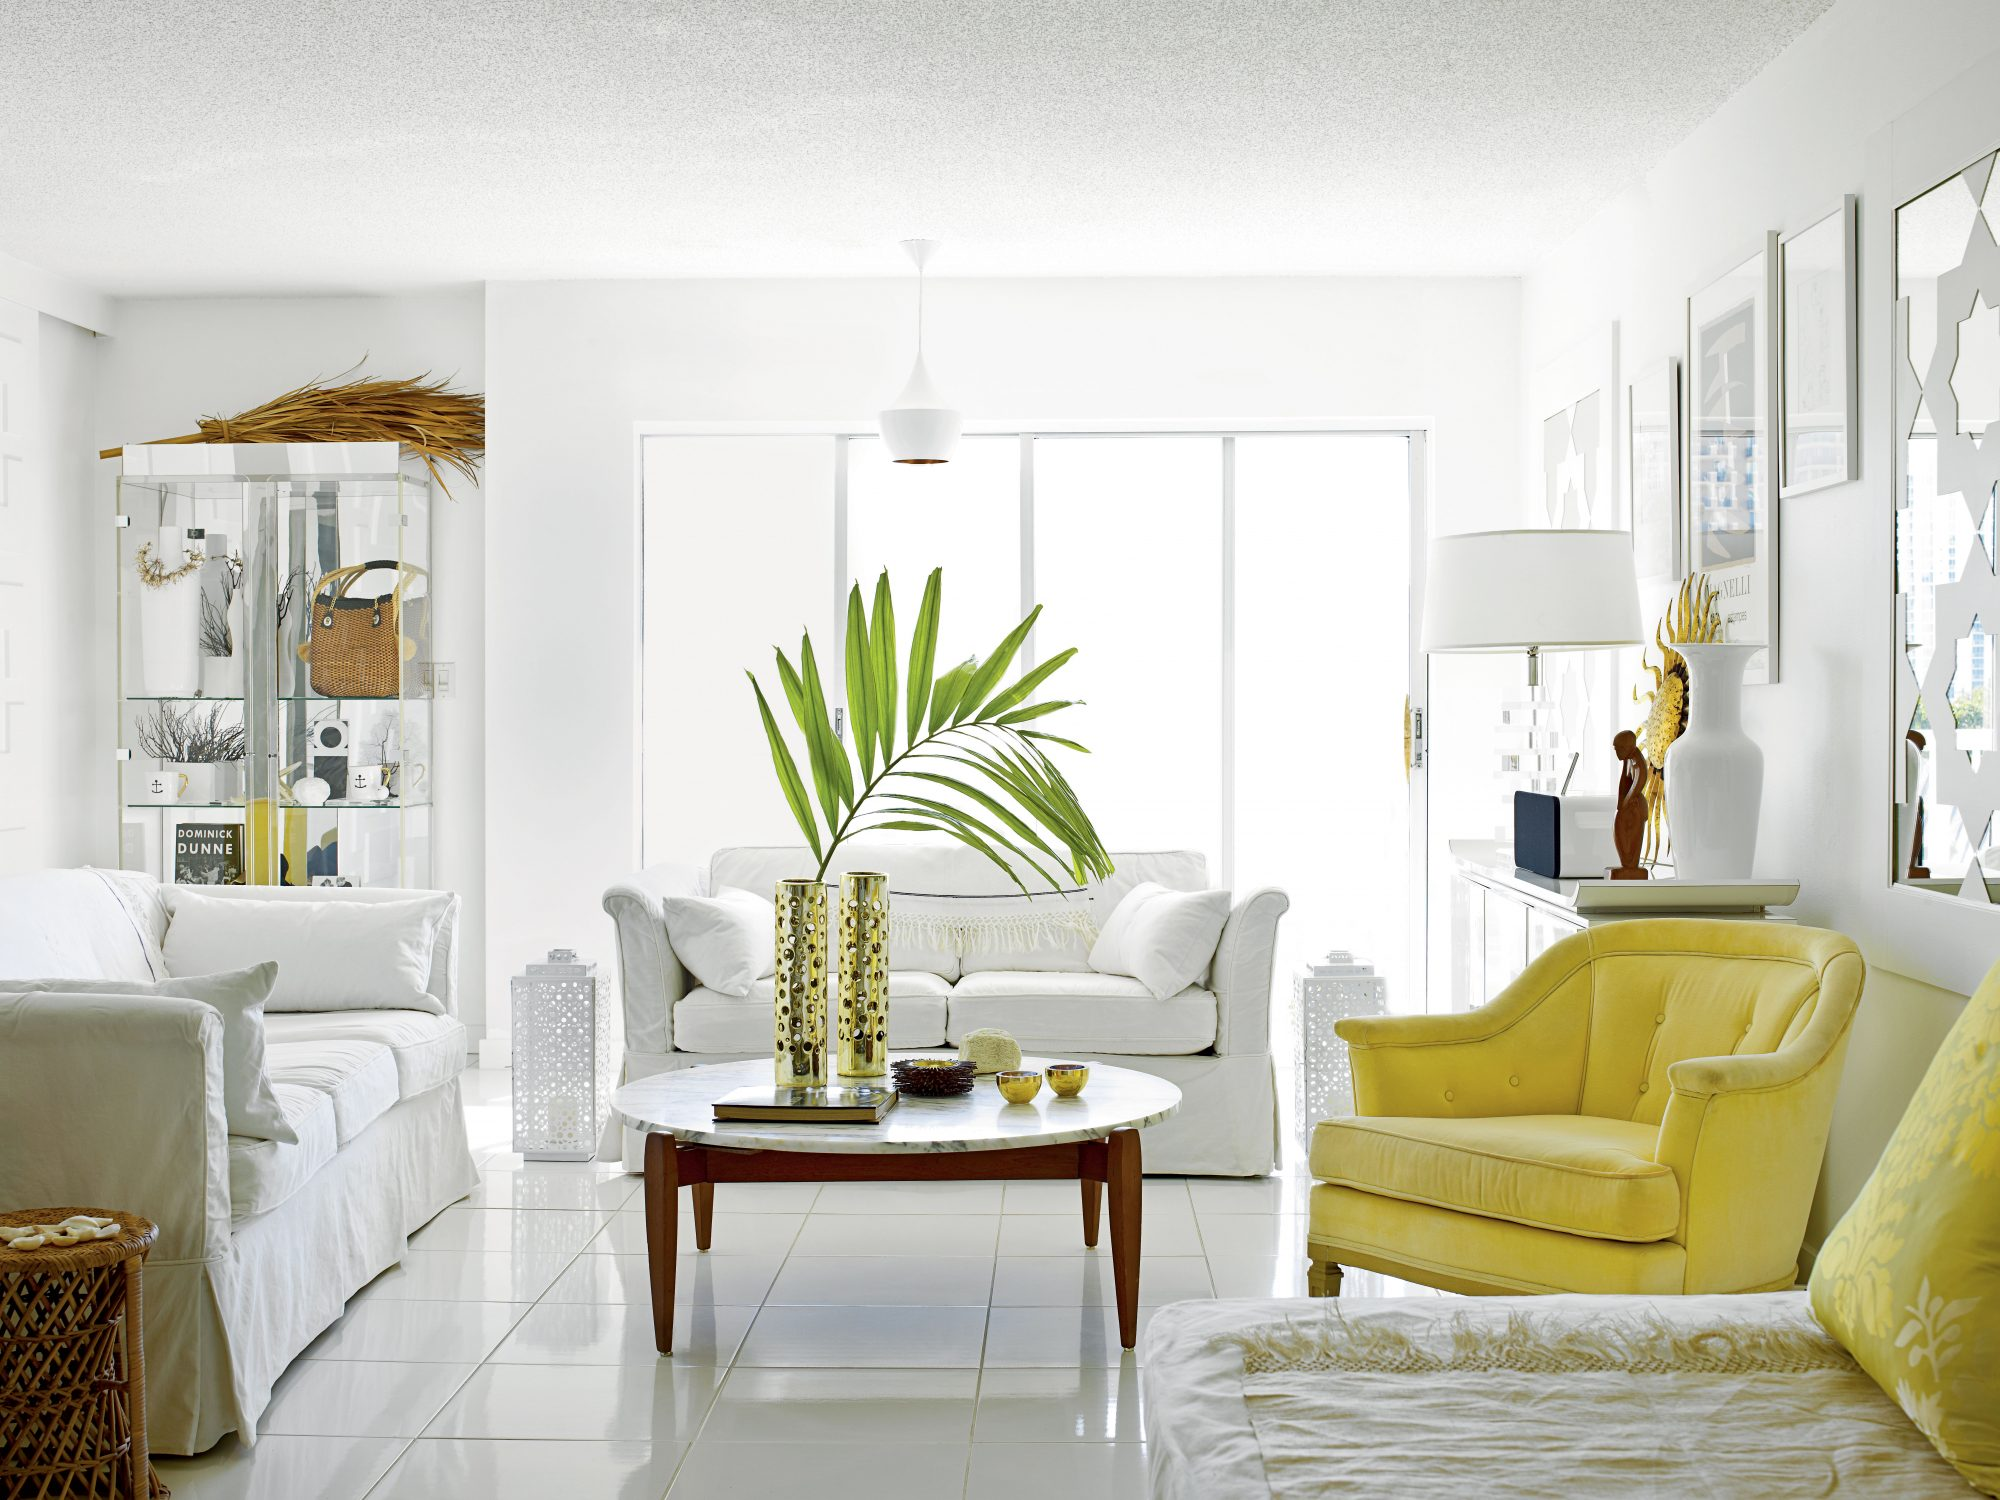 This stylish Miami condo receives the modern treatment with a laid-back, all-white aesthetic. A pop of color from the yellow chair breaks up the pristine palette.